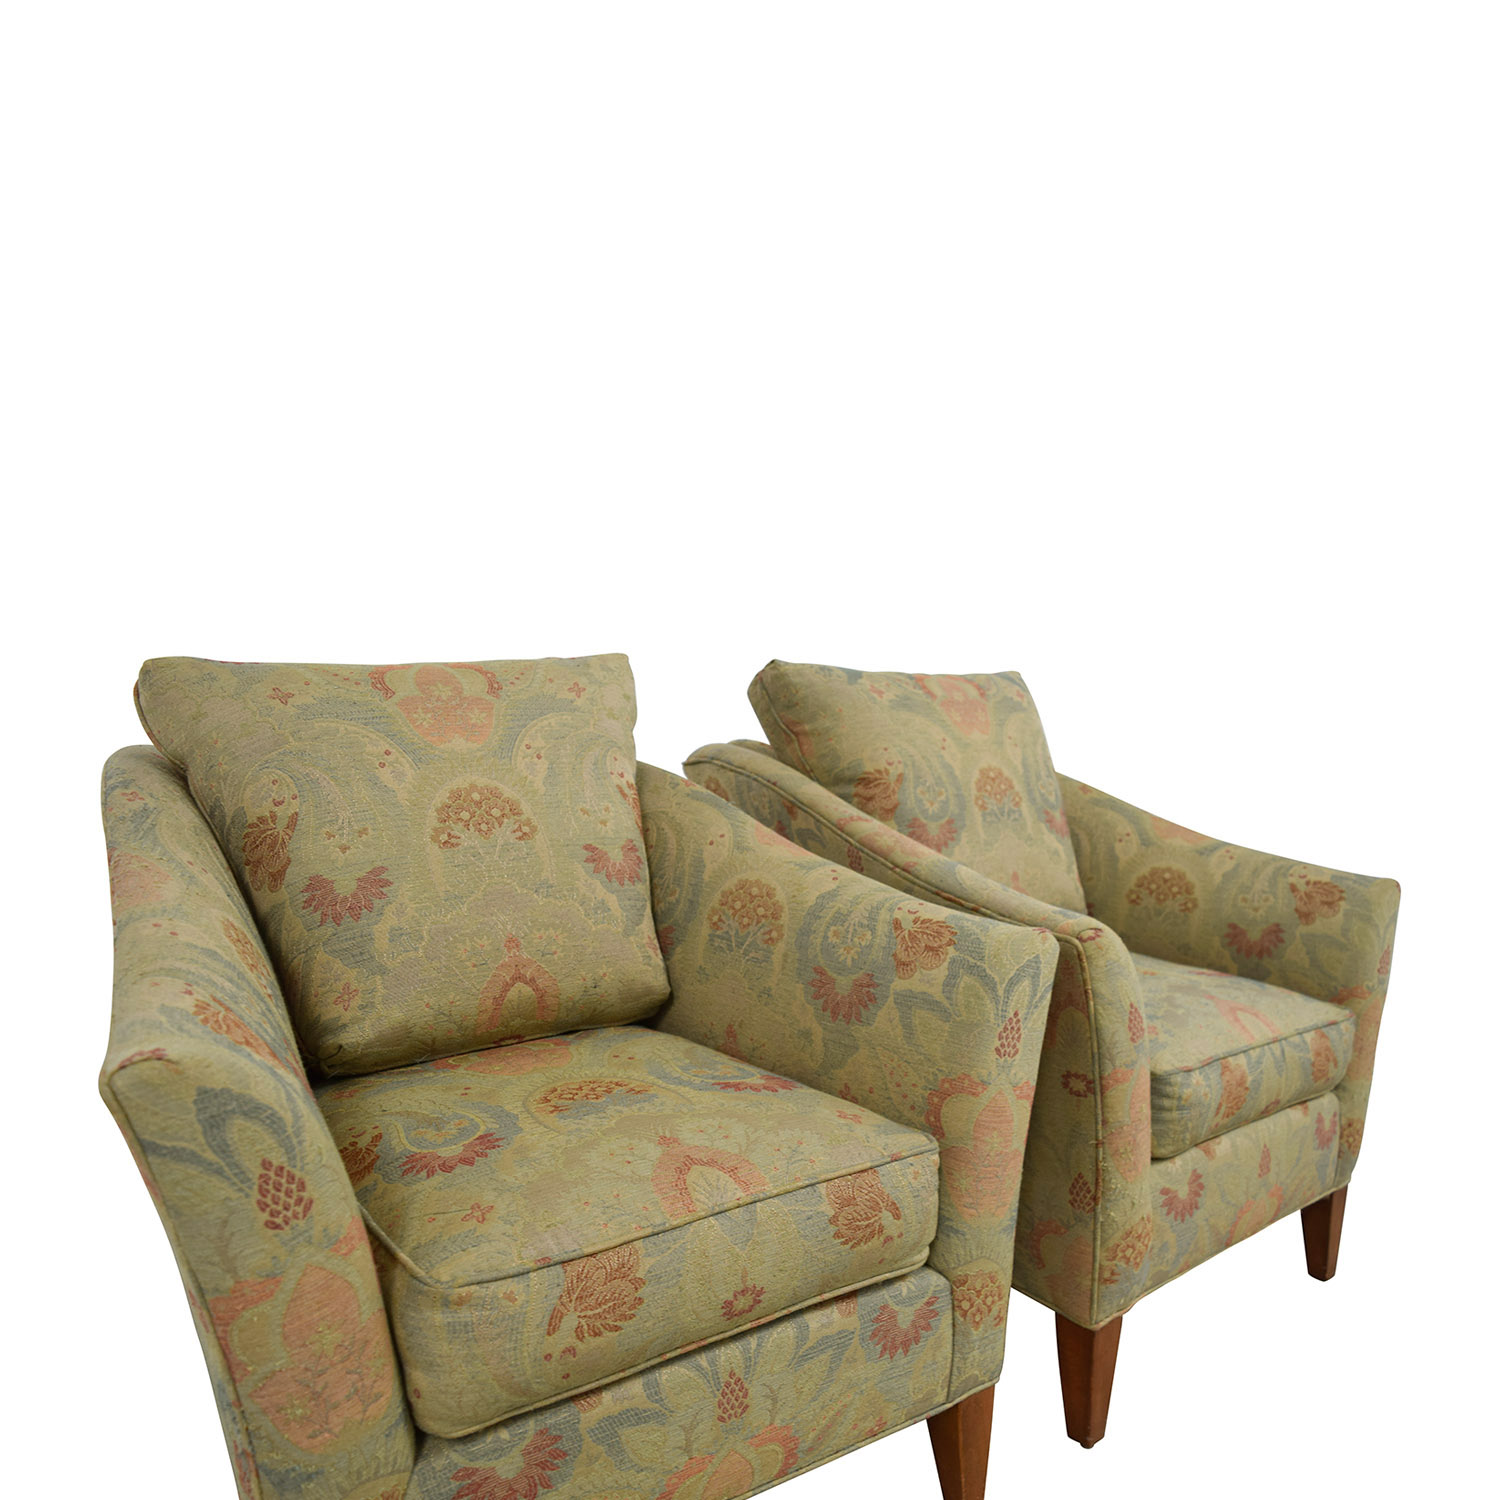 ethan allen recliners chairs unique office chair mats 90 off gibson floral